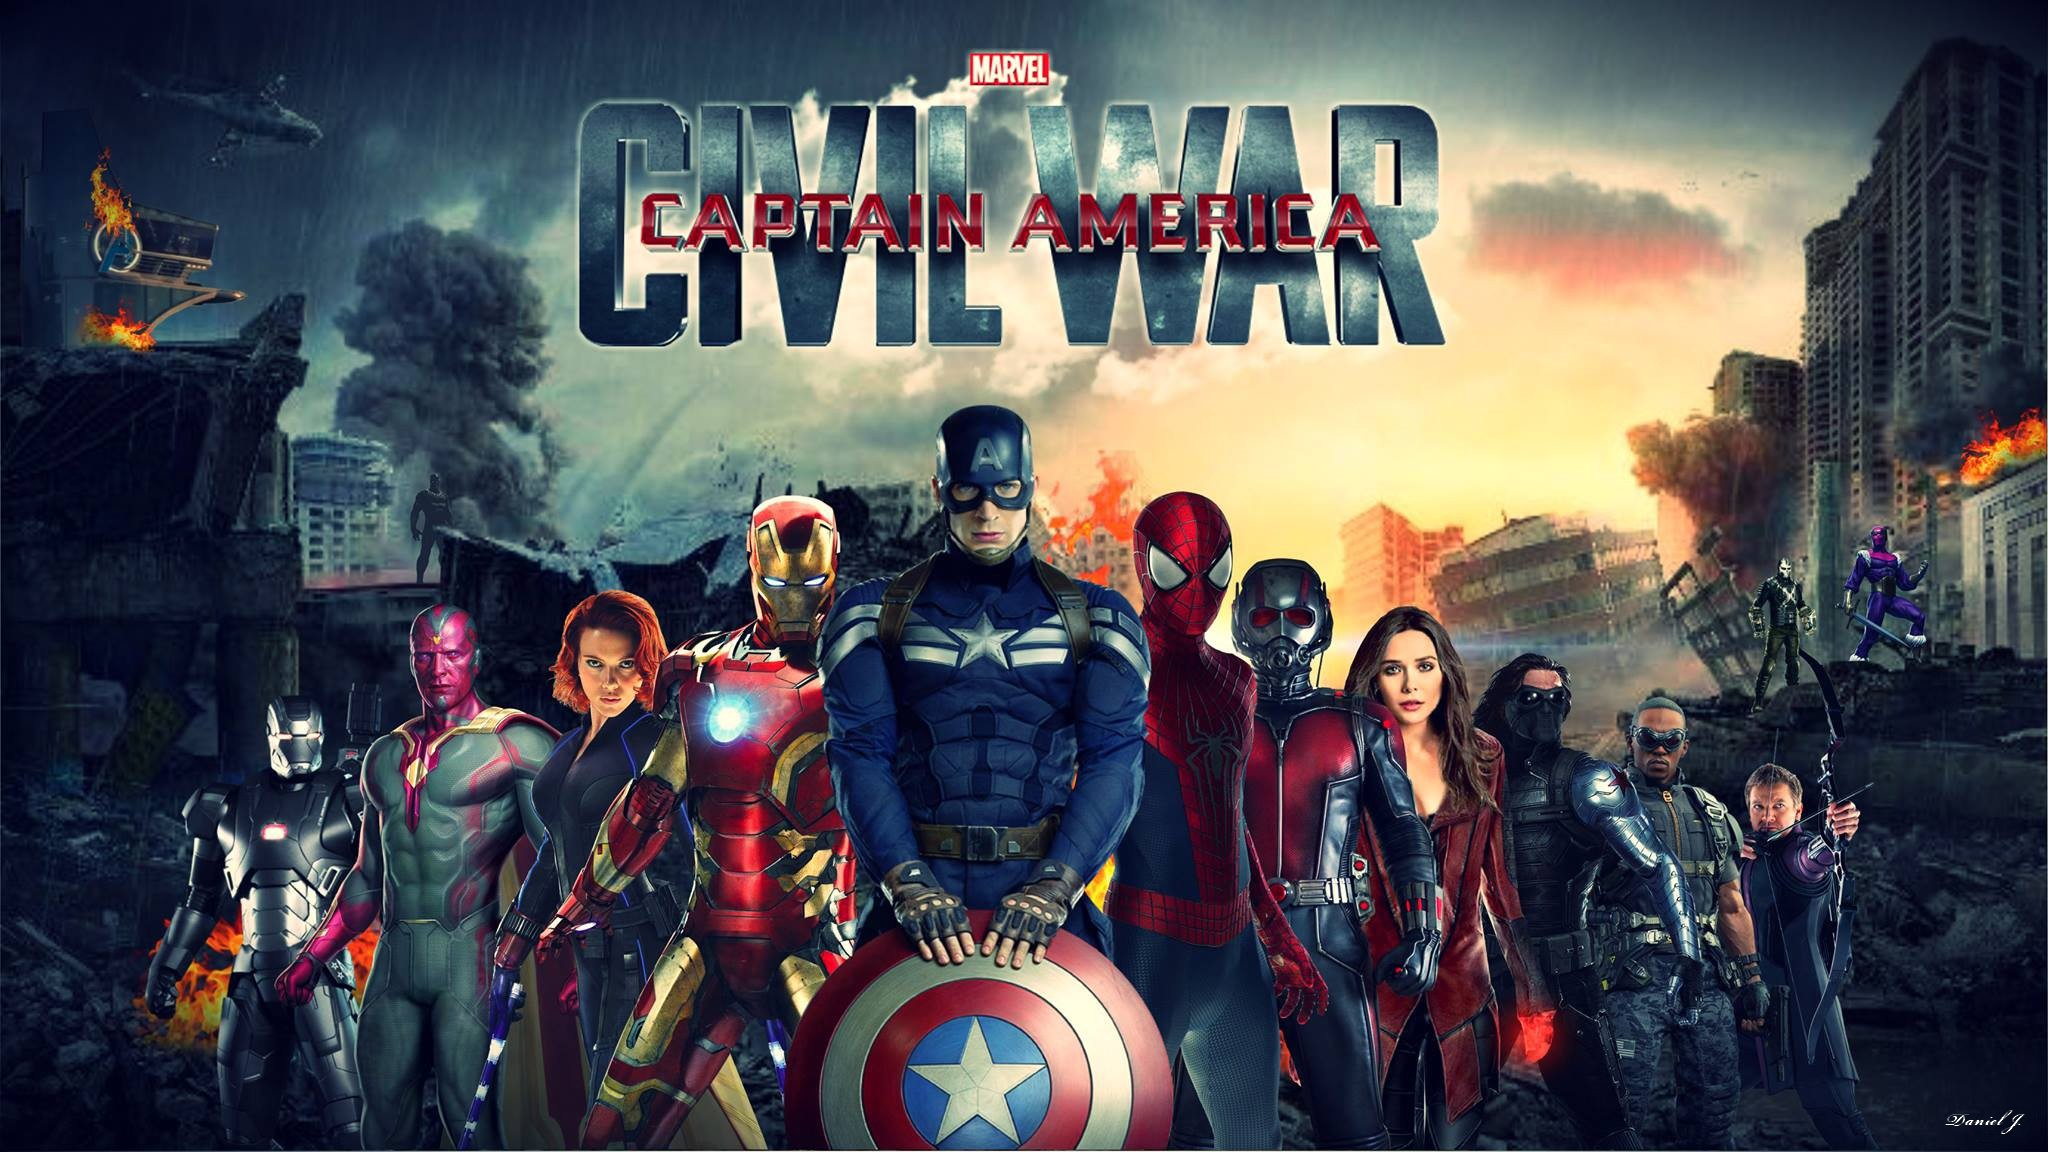 Hd wallpaper of captain america - Captain America Civil War Wallpapers Images Photos Pictures